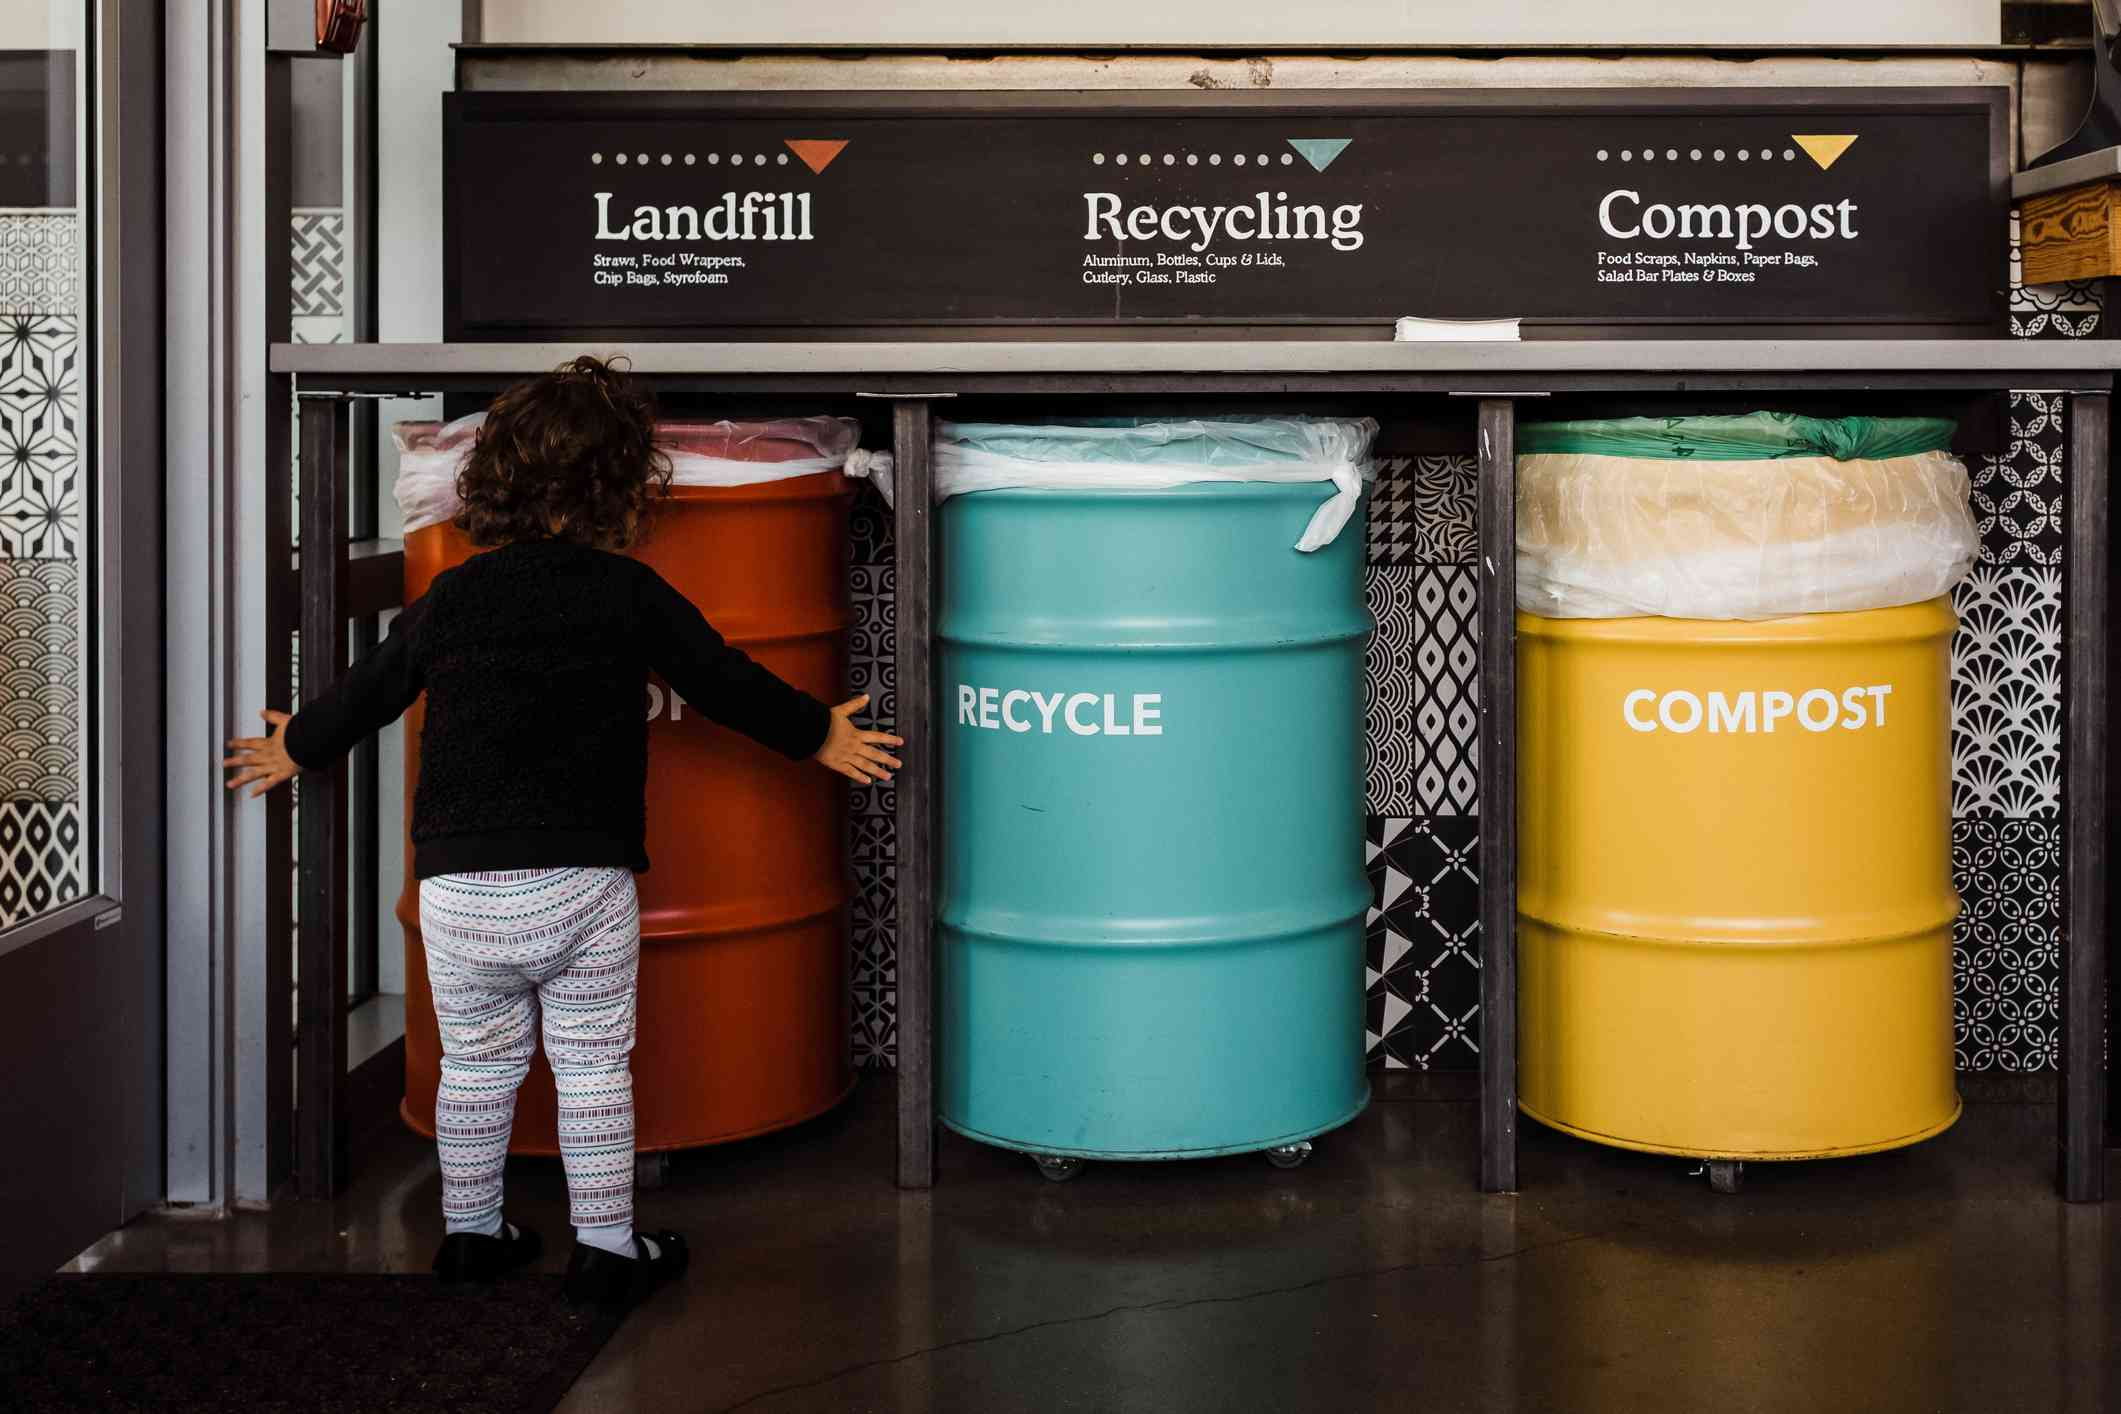 Small child standing in front of three large bins labeled: landfill (red), recycling (blue), and compost (yellow).